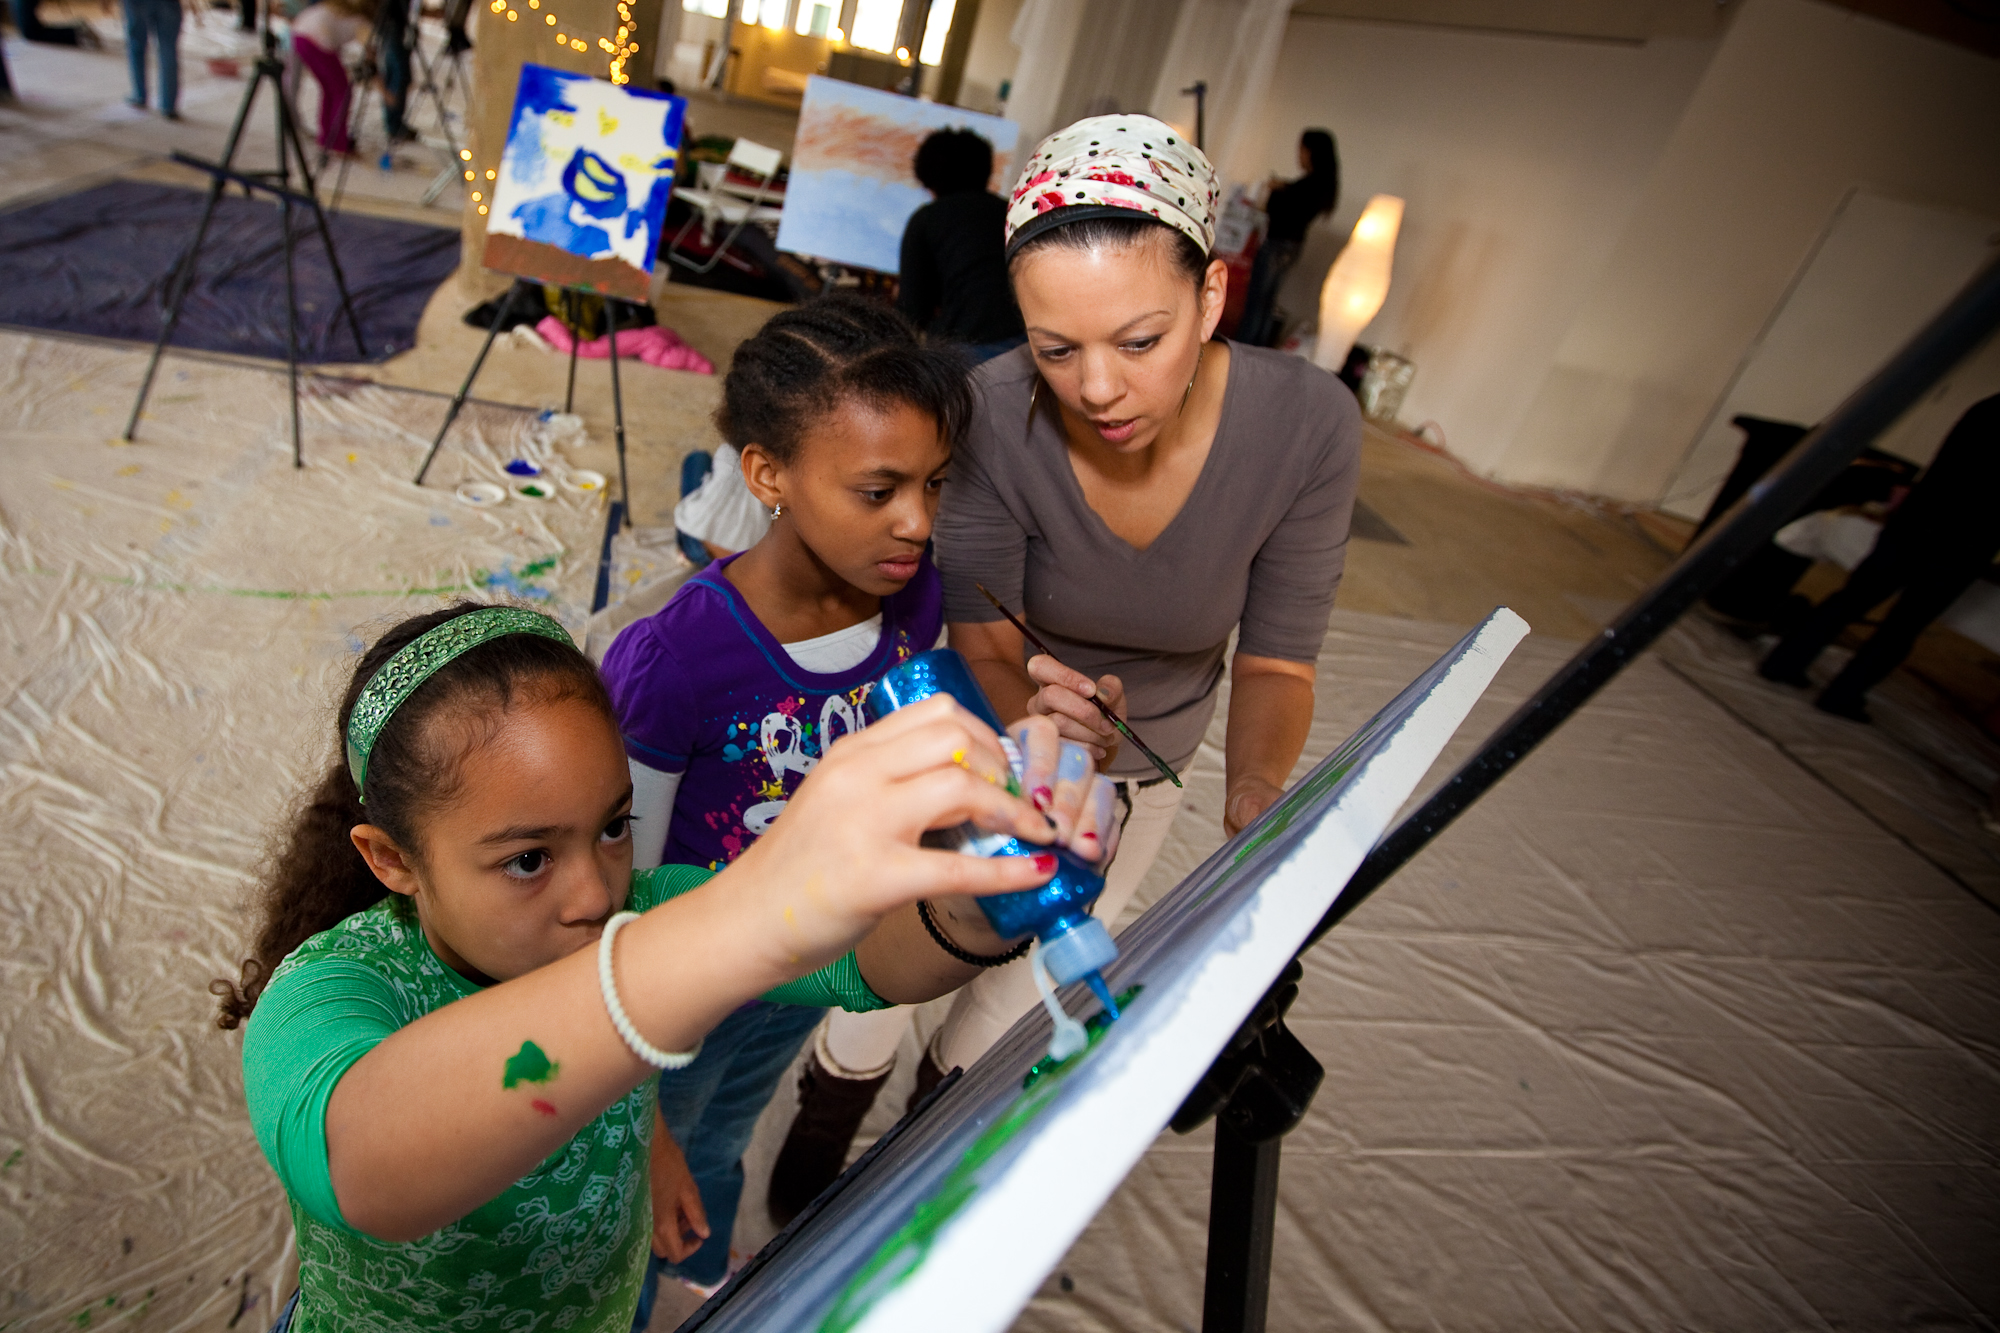 Kids Paint Classes and Kids Activities at ArtJamz Kidz Academy